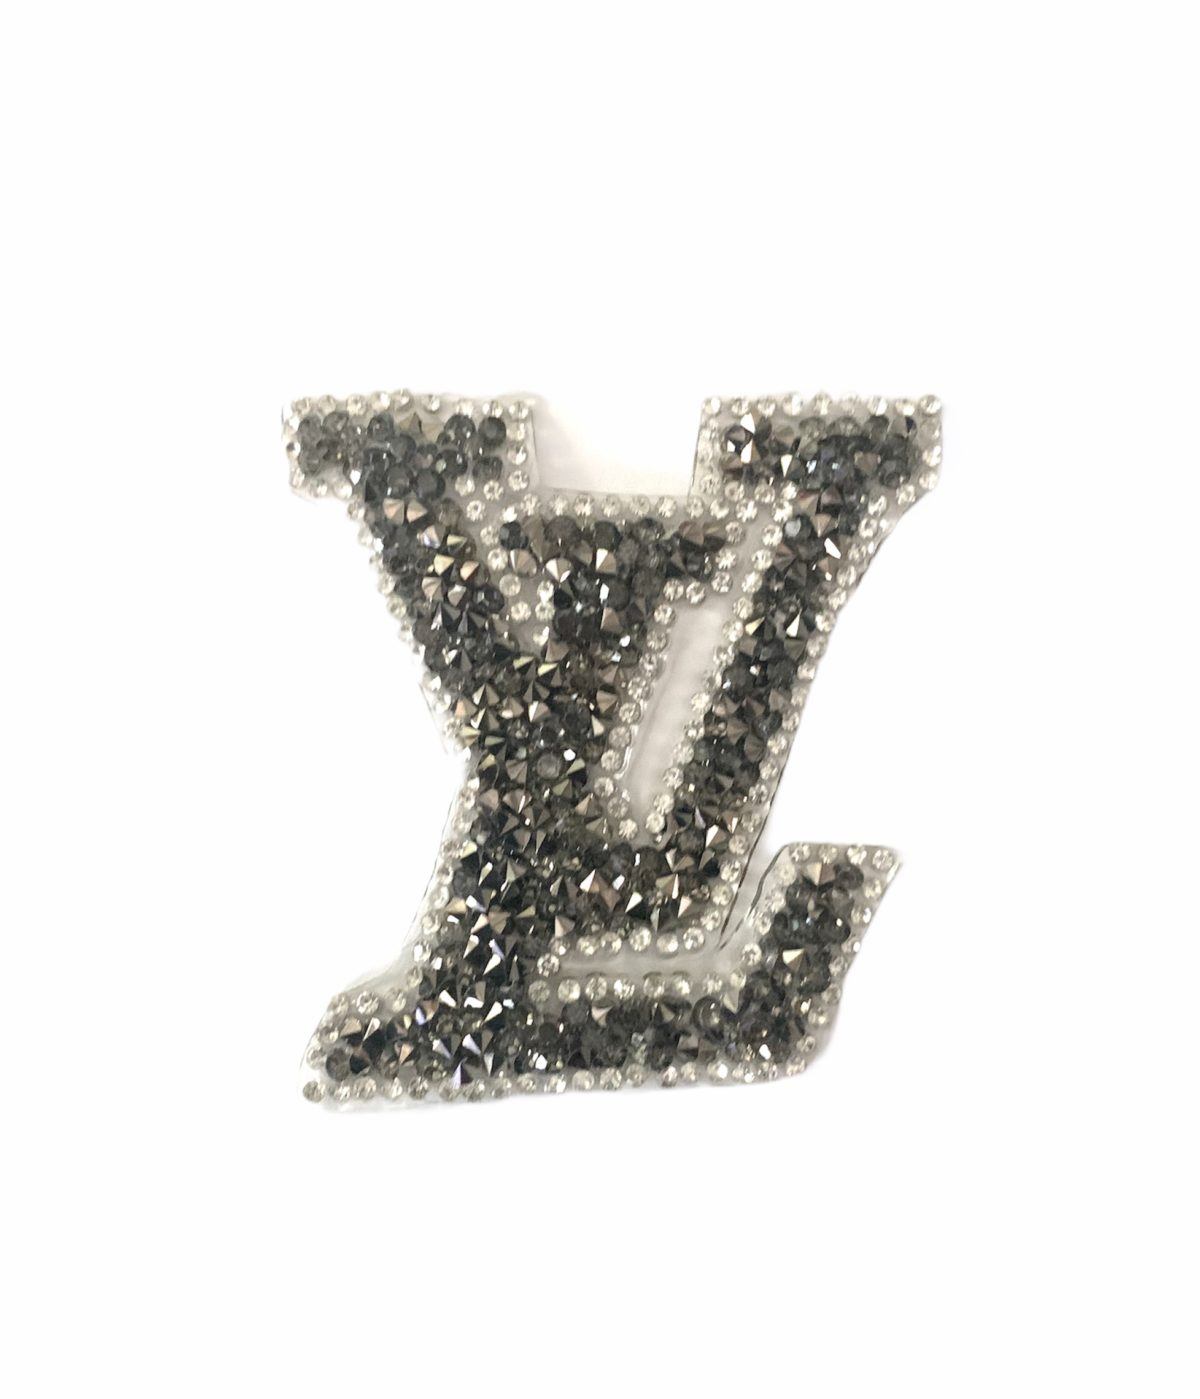 New LV Inspired Bling Patch, Hot fix Iron On Patch 1